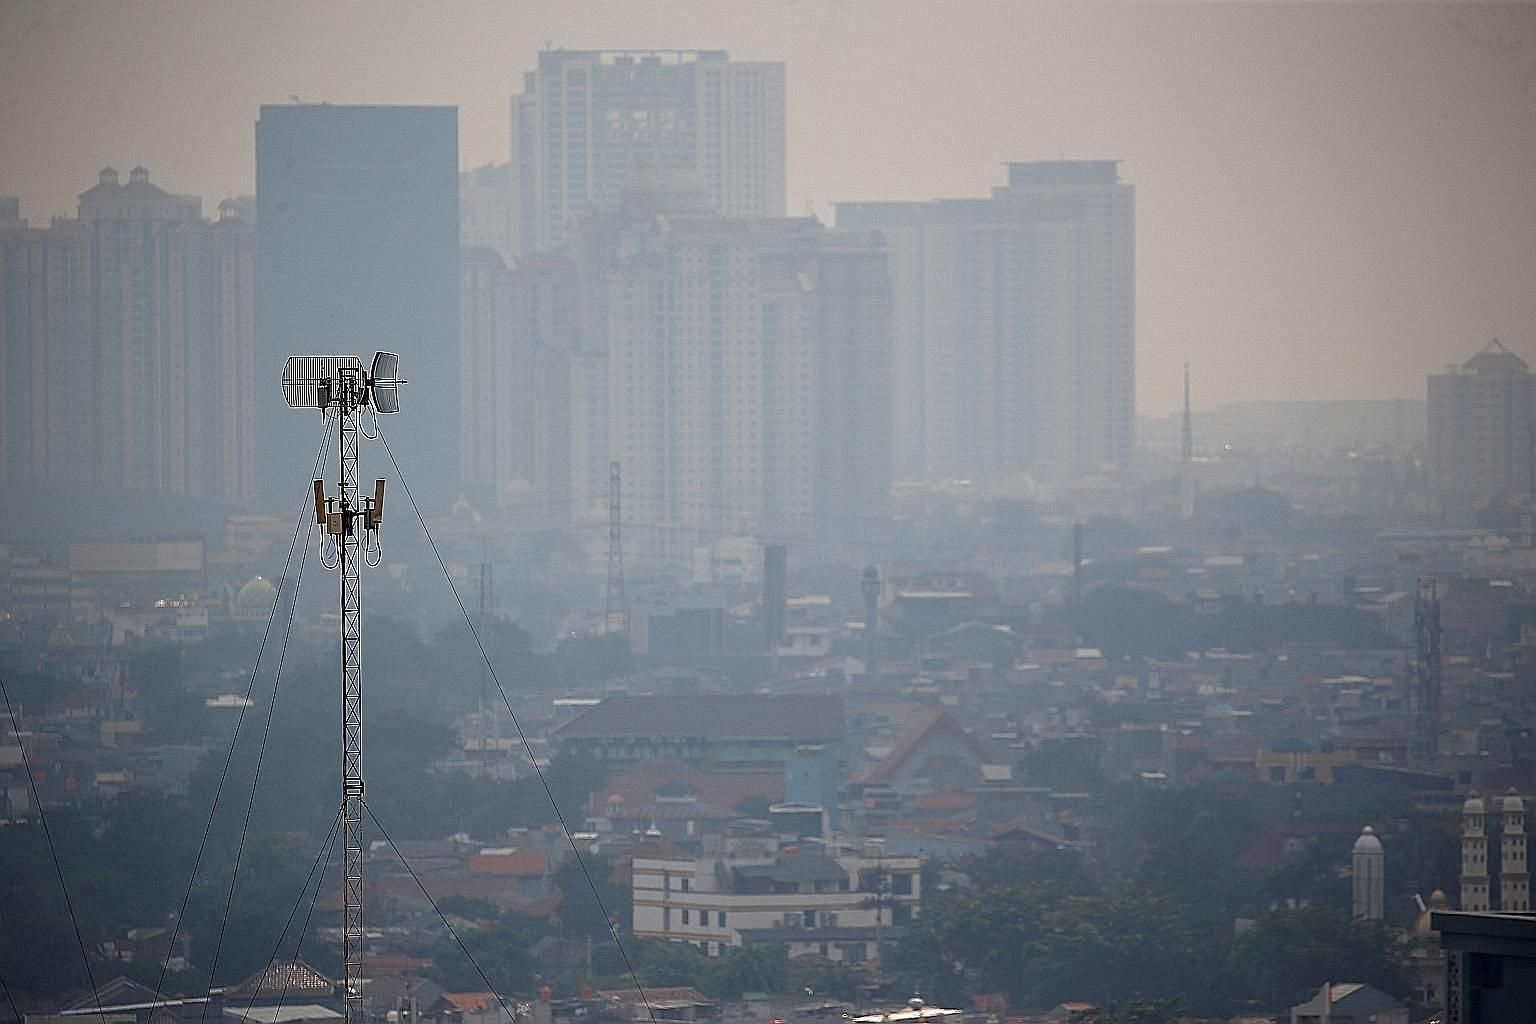 Smog over Jakarta on July 12. Extreme weather affecting the city has become more severe over the years, threatening food supply, worsening flooding and posing socio-economic risks such as disrupting school activities.